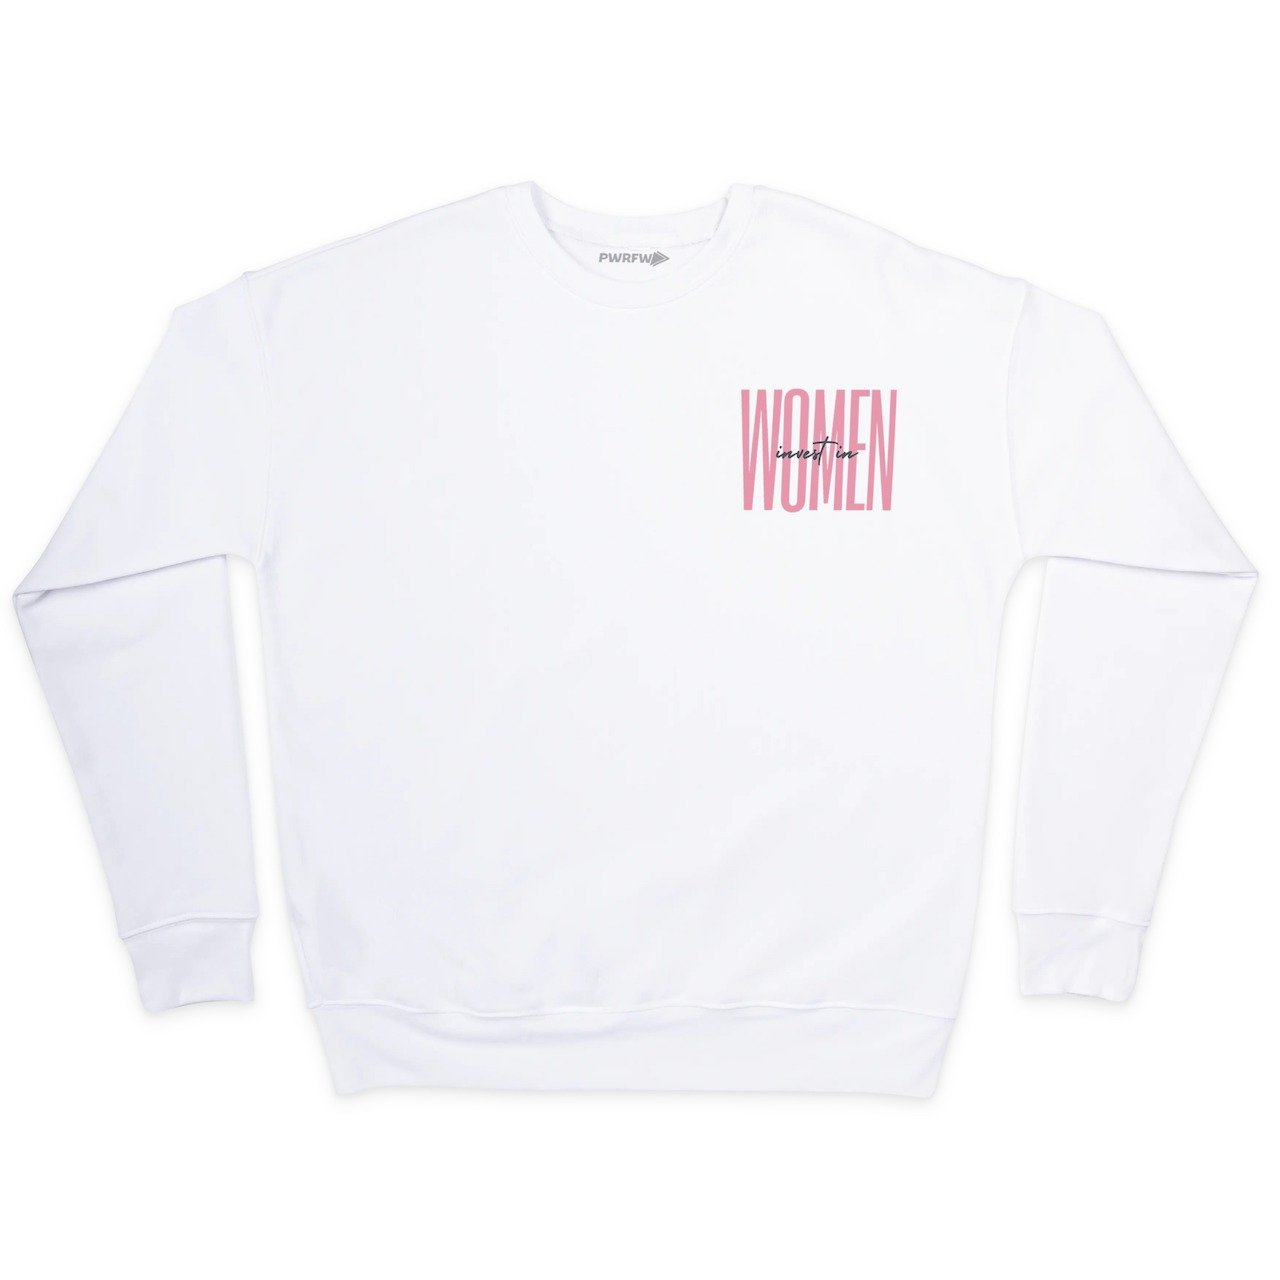 Kelsey Trainor Invest in Women Crew Neck Sweatshirt